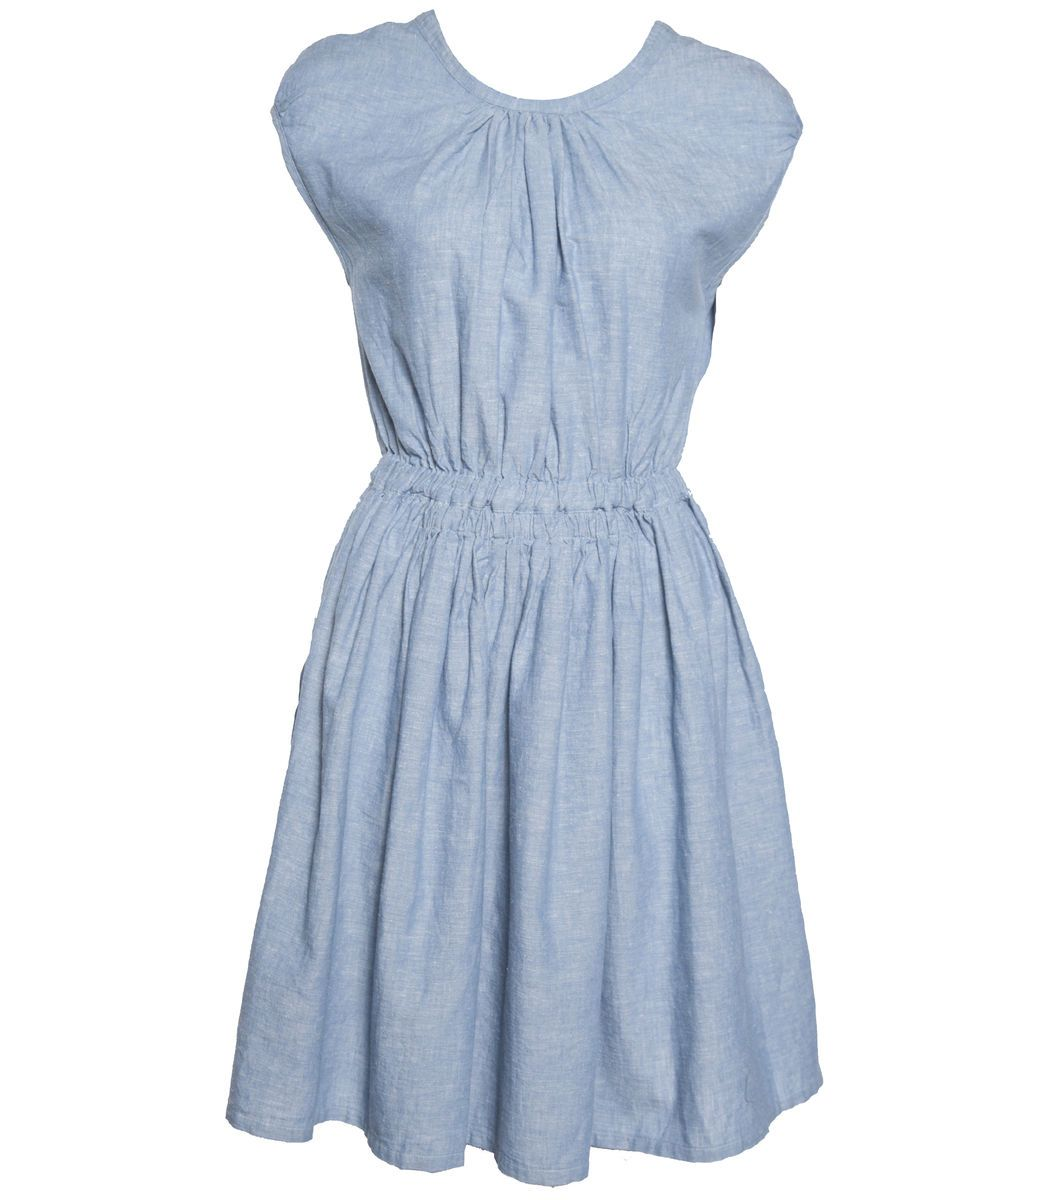 satellite dress - great for this warm summer weather or for a crisp autumn day with tights